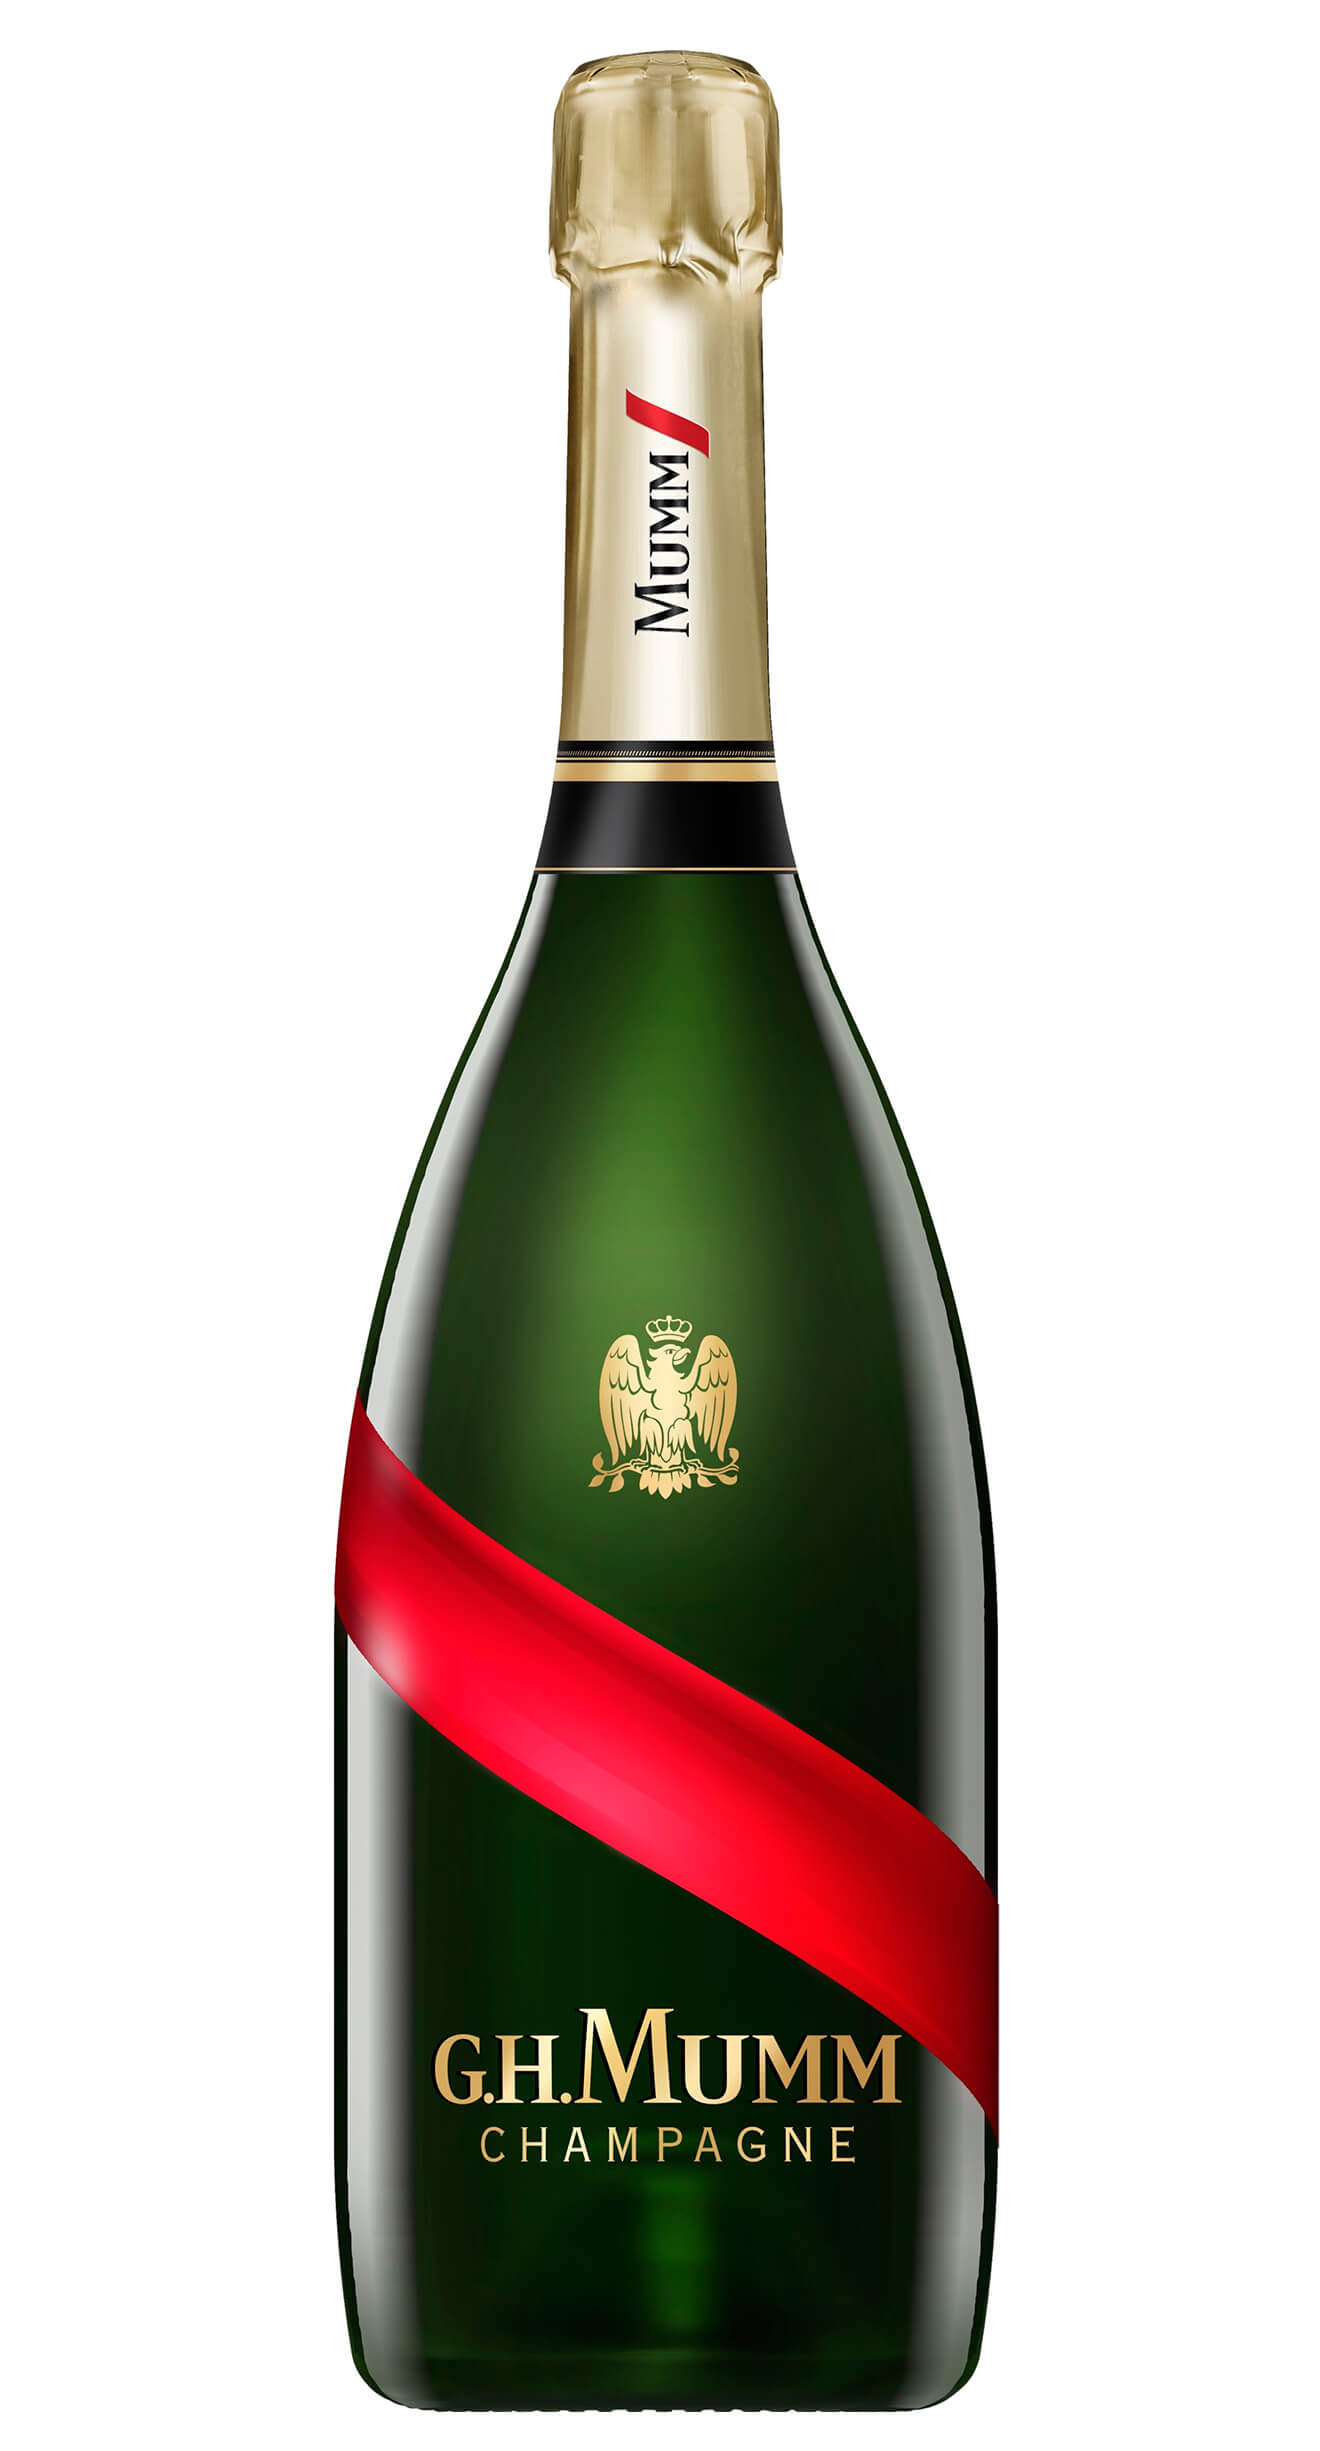 Maison Mumm Launches Revolutionary New Bottle in US, featured brands